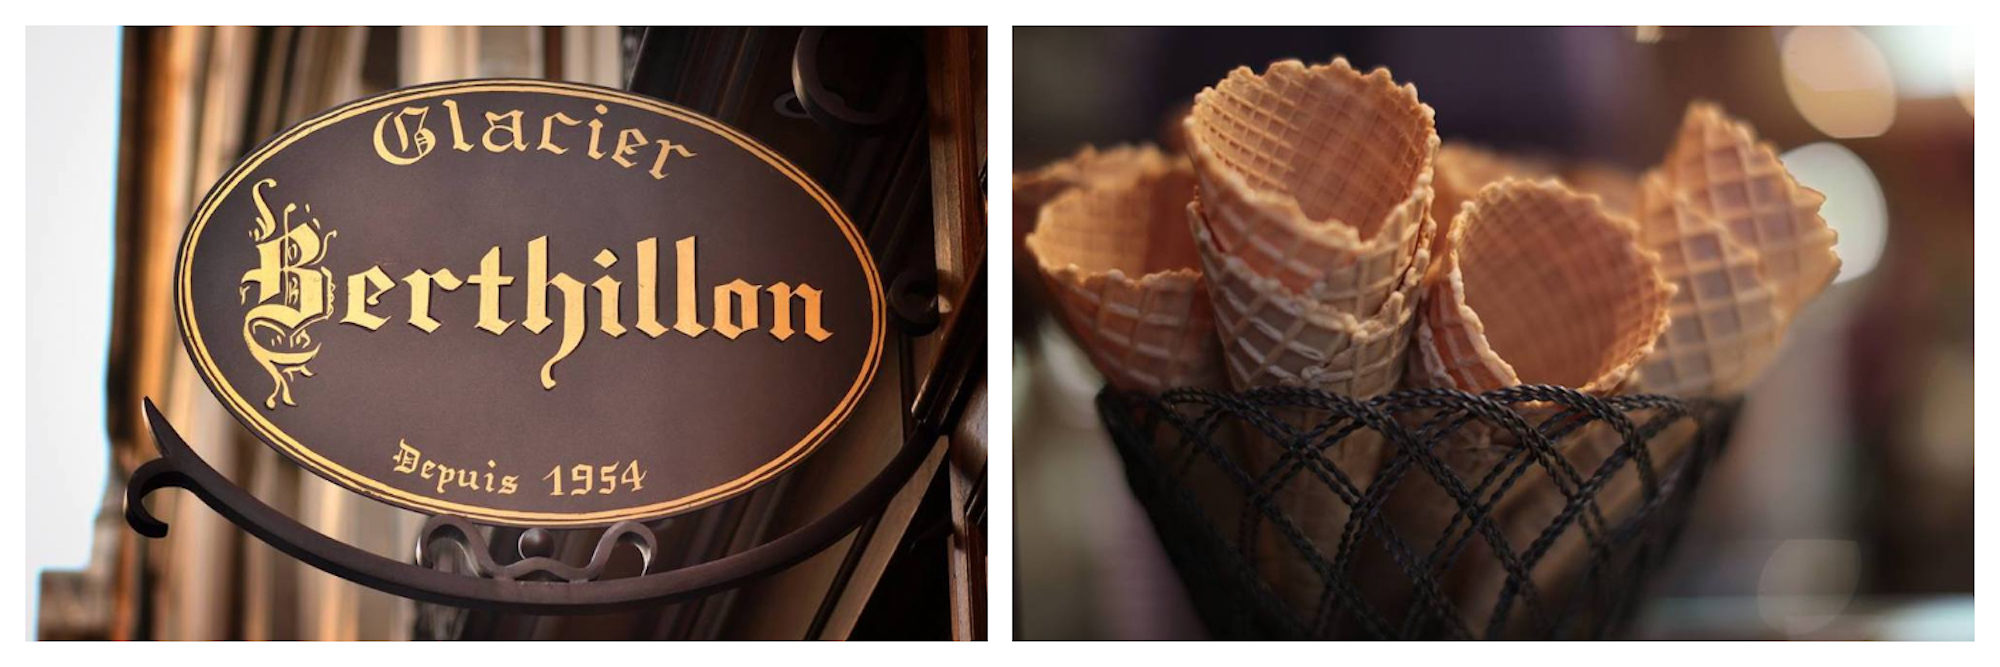 There's no place like Berthillon for ice cream in Paris (left). Delicate Berthillon ice cream cones in a wire basket (right).